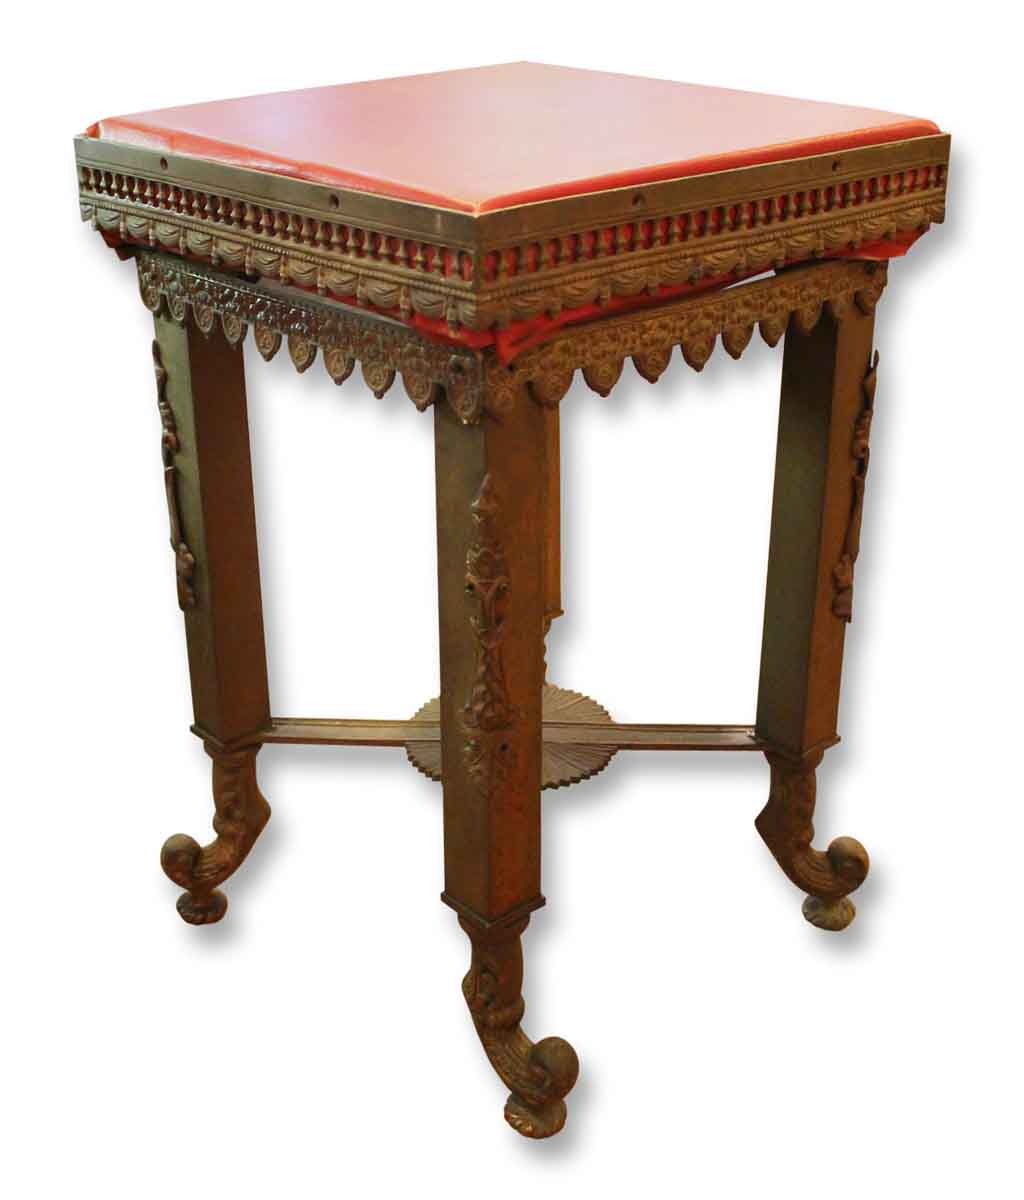 Pair of bronze stools or side tables with red tops olde - Antique side tables for living room ...